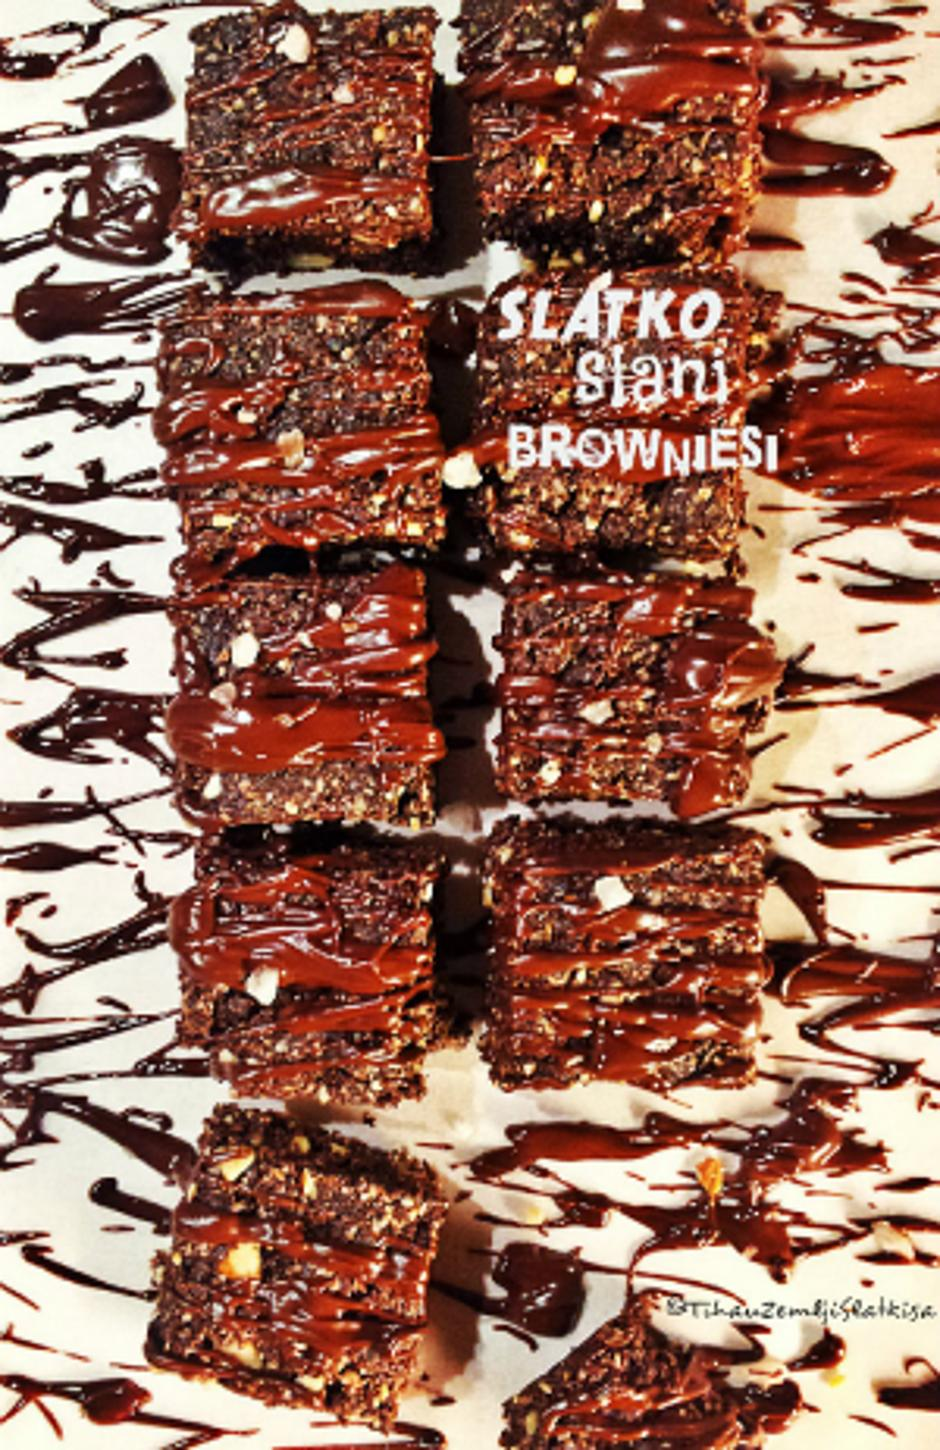 brownie uspravna.jpg | Author: